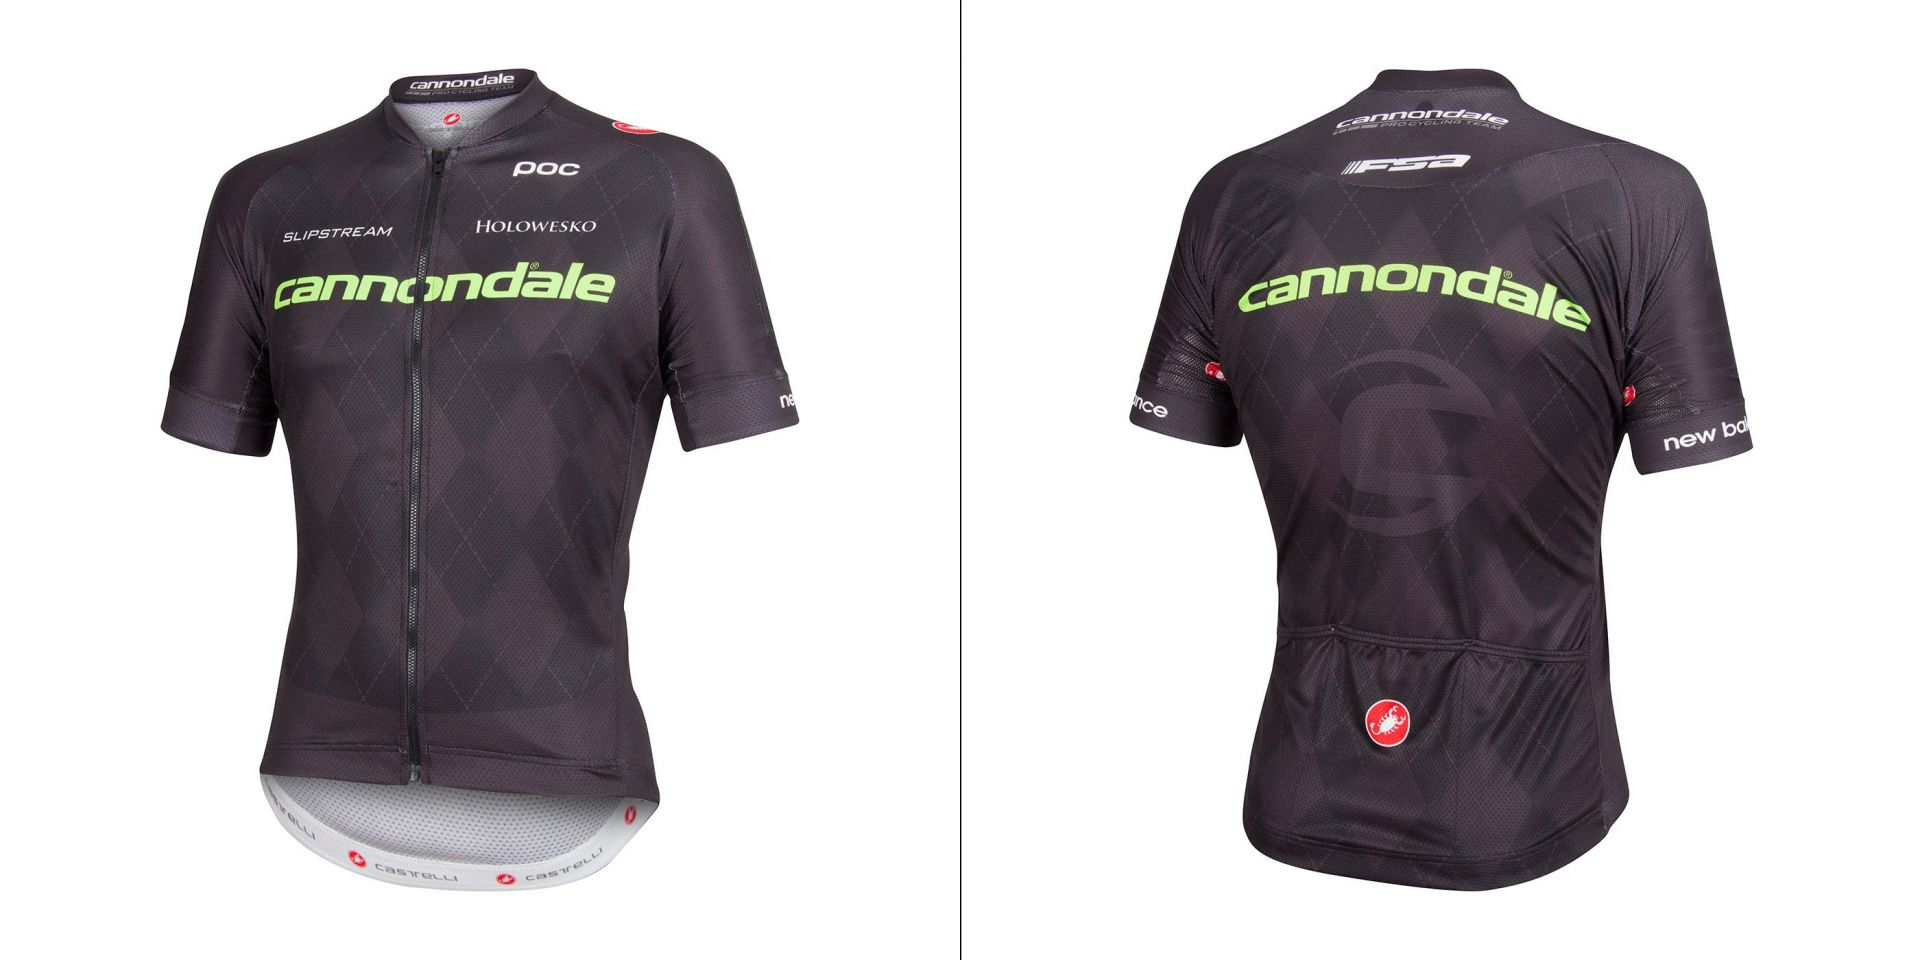 Maillot Cannondale Cannondale Pro Cycling Team by Castelli Noir Limited - L